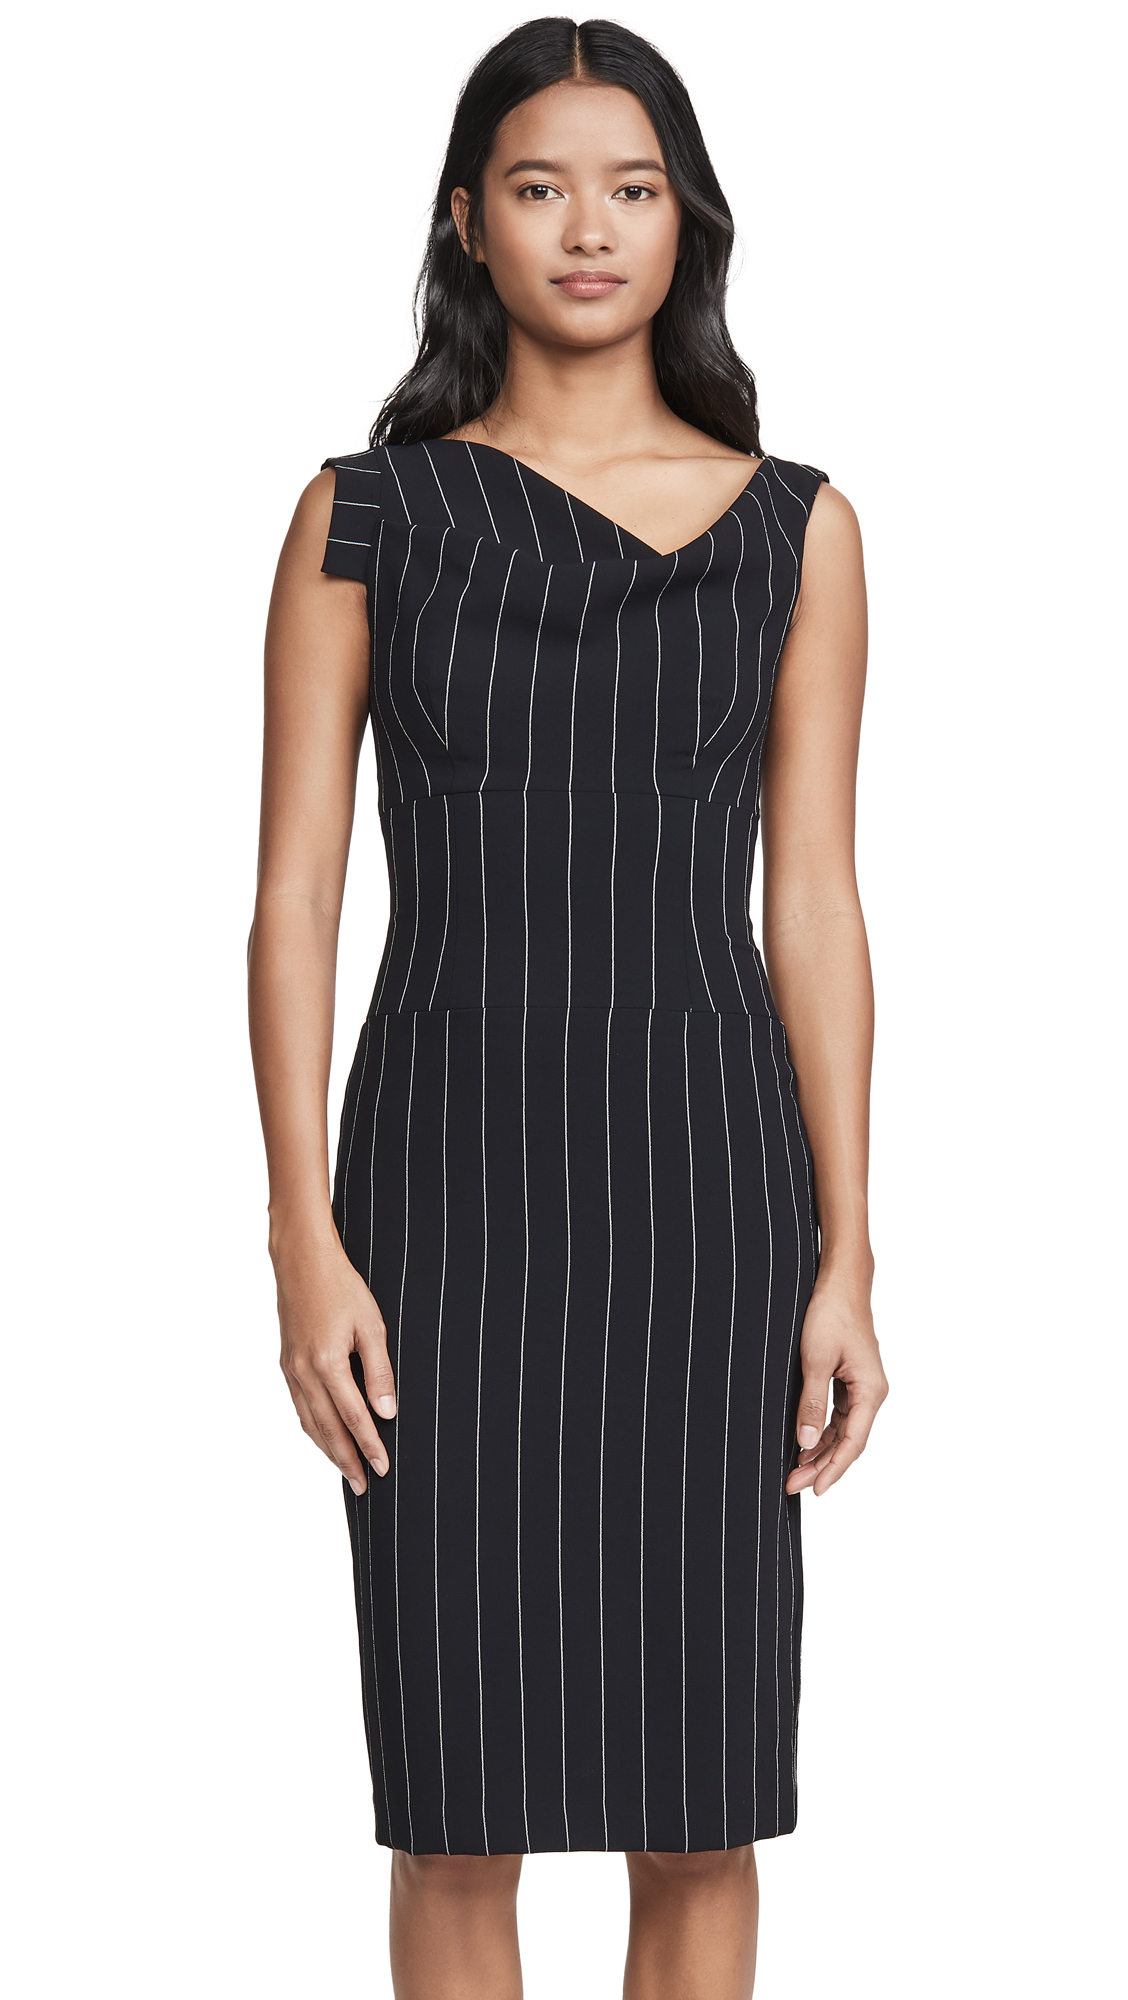 Black Halo Jackie O Dress - 30% Off Sale